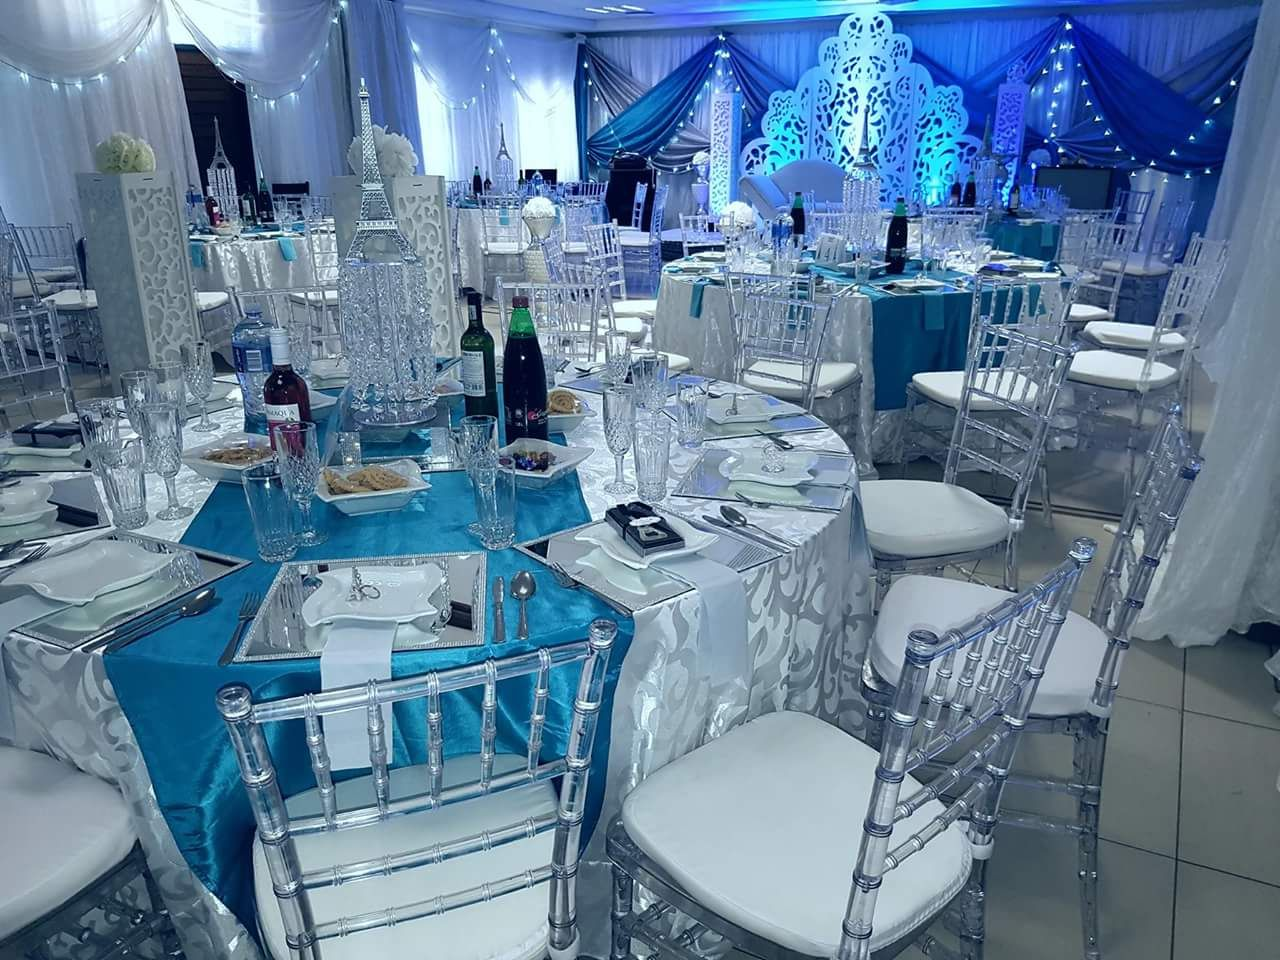 Wedding planning and decor services